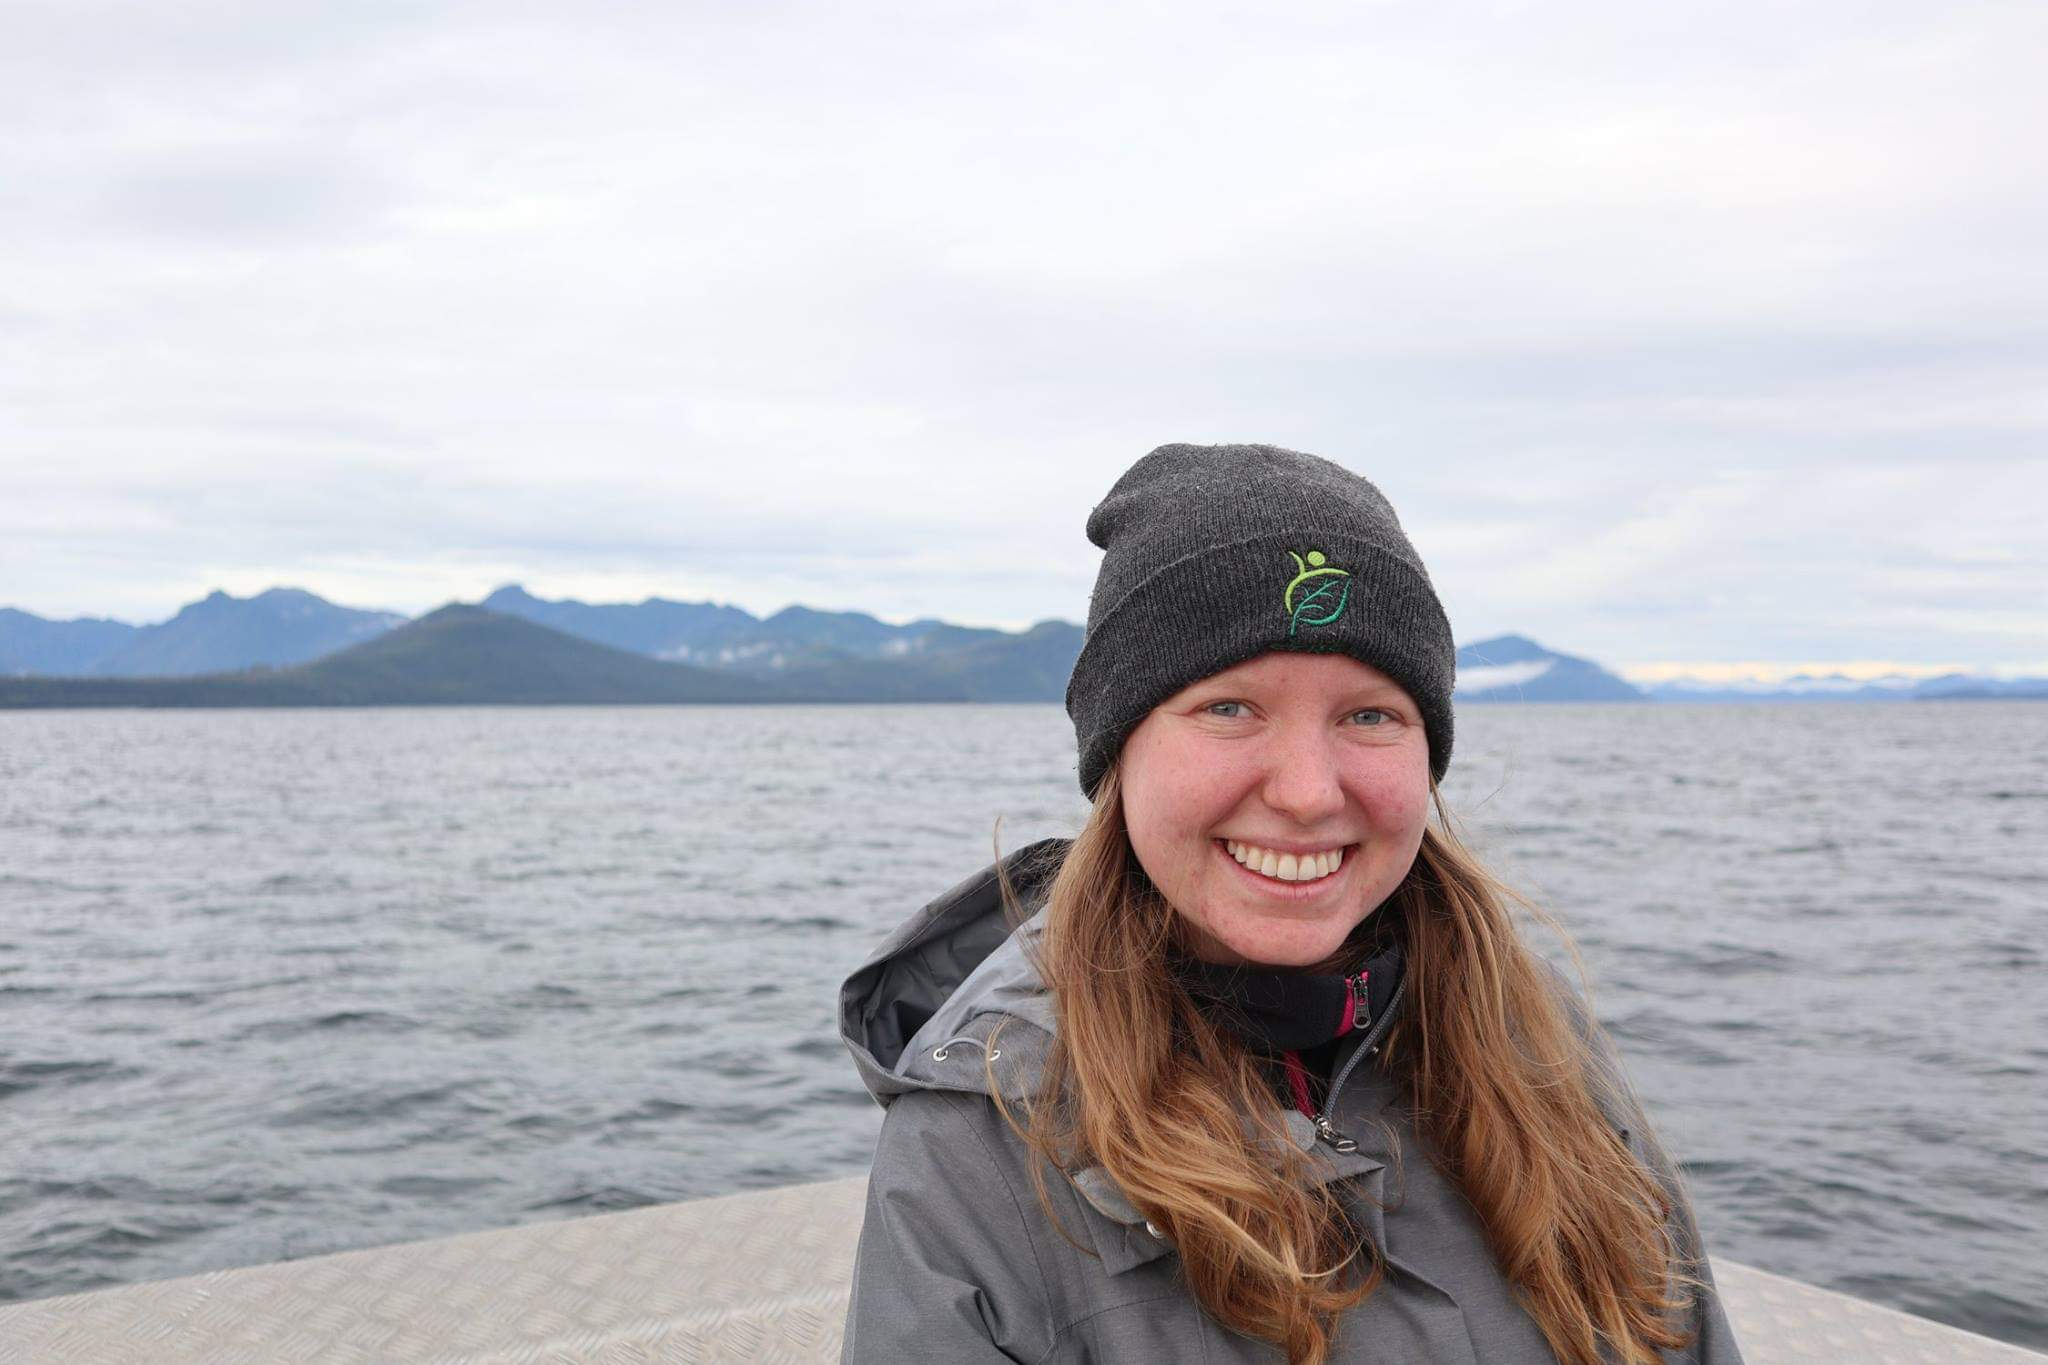 Taylor Larking - NSERC USRA Summer researcher (2019-2020)For her senior honours research project, Taylor will be heading up to Labrador to conduct fieldwork on climate change related impacts on terrestrial ecosystems across Nunatsiavut and NunatuKavut.